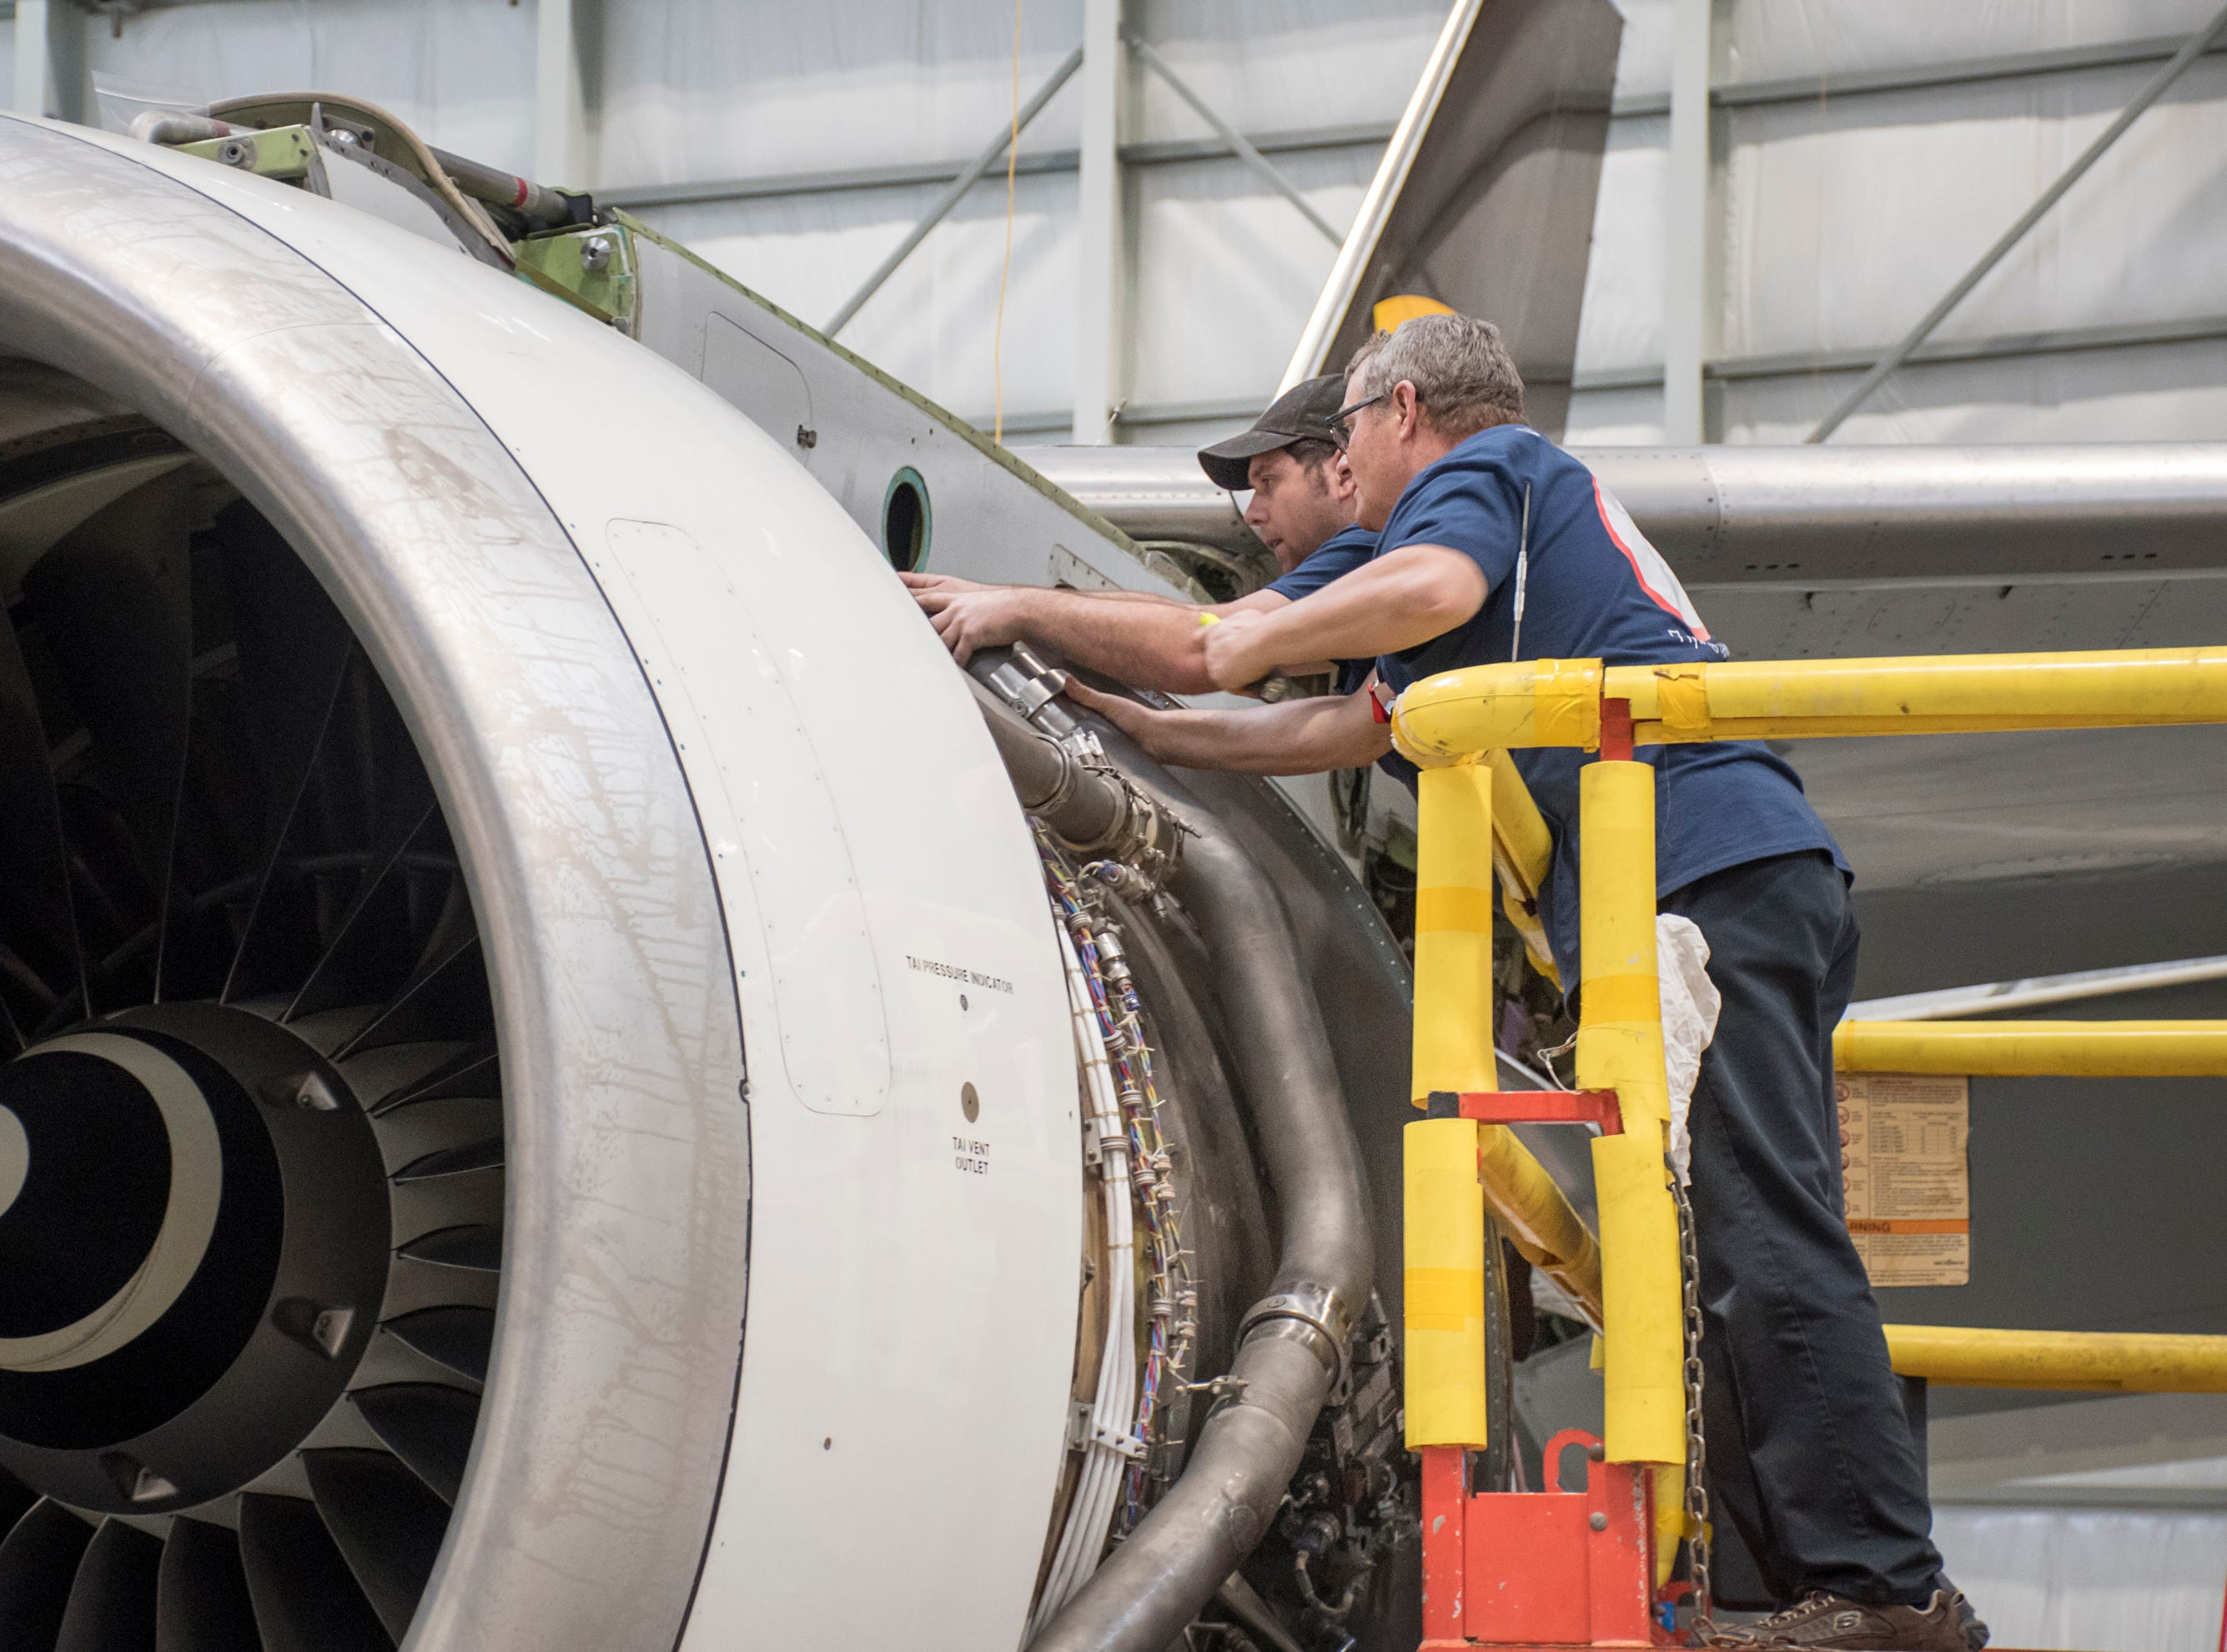 Mechanics Eric Matherly, right, and Justin Wilson work on a jet engine in the hangar at ST Engineering at the Pensacola International Airport in Pensacola on Friday, February 8, 2019.